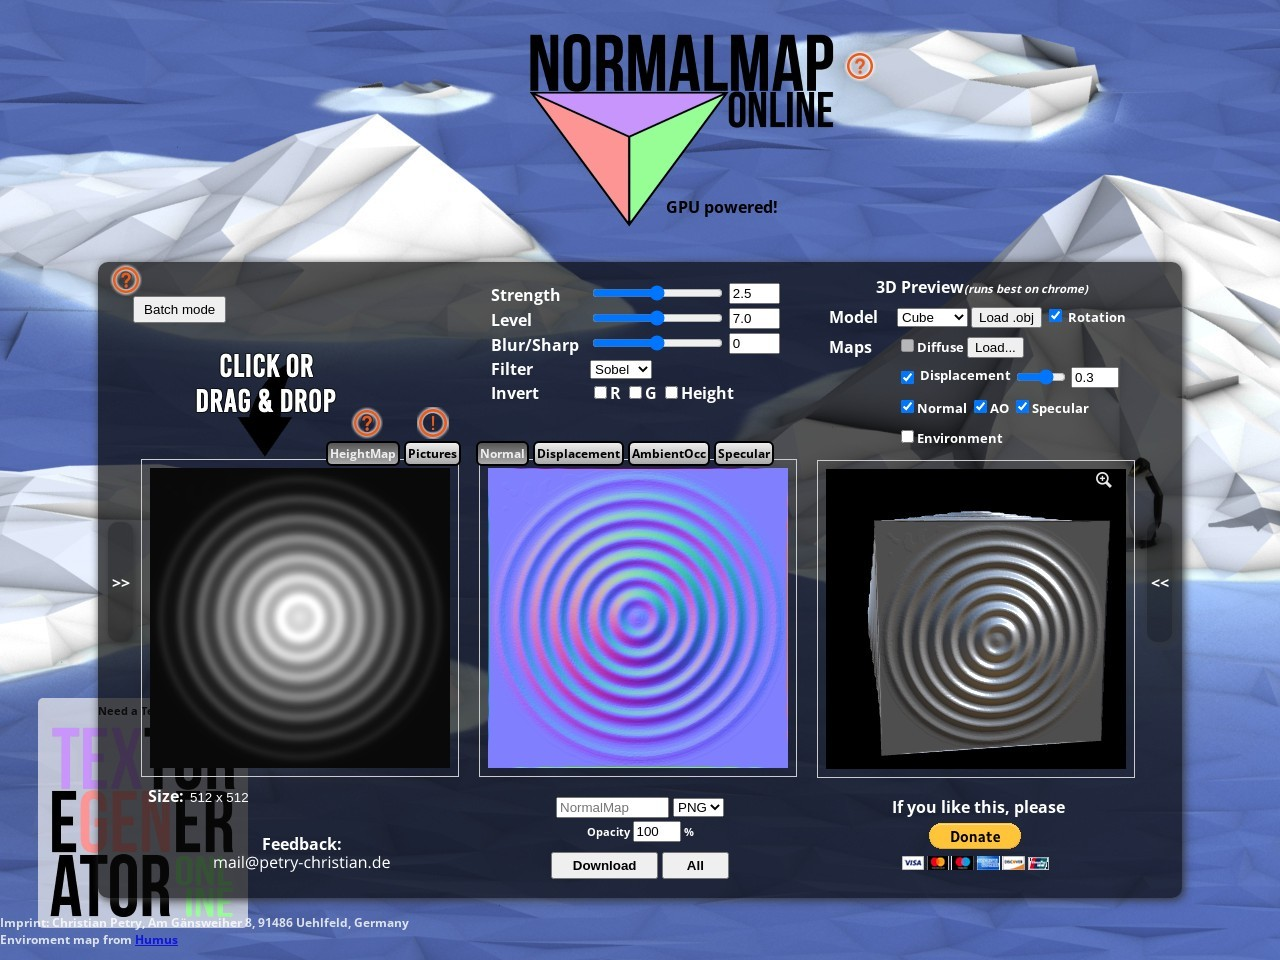 http://cpetry.github.io/NormalMap-Online/